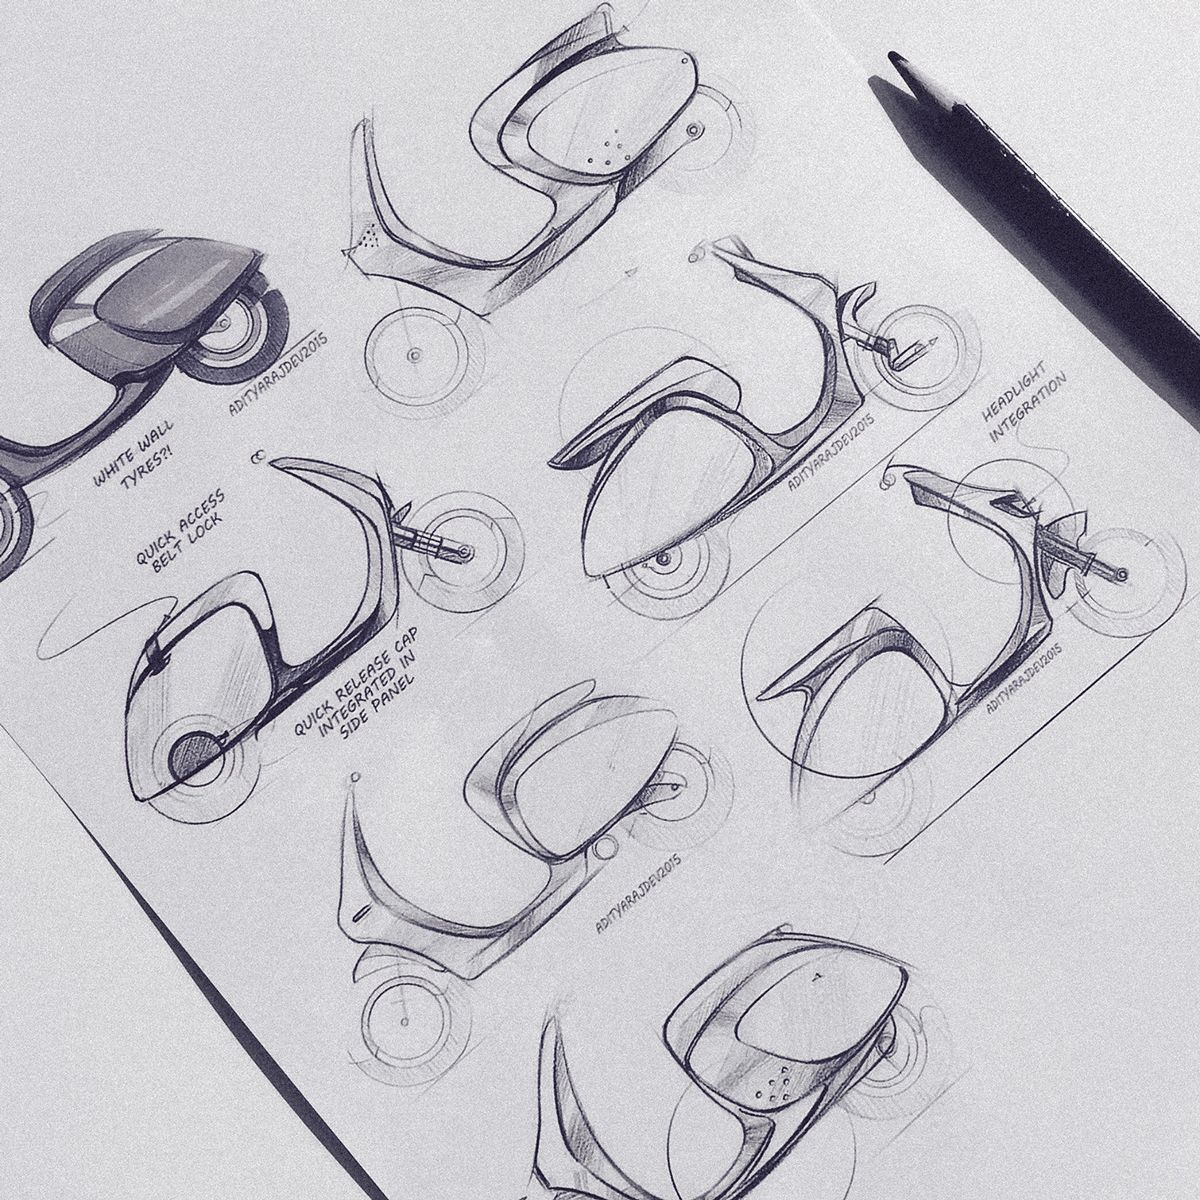 scooter / scooterdesign / transportationdesign / industrialdesign / productdesign / sketch / blue / pencil / behance / idsketching / sketchaday / render / doodle / vespa / unisex